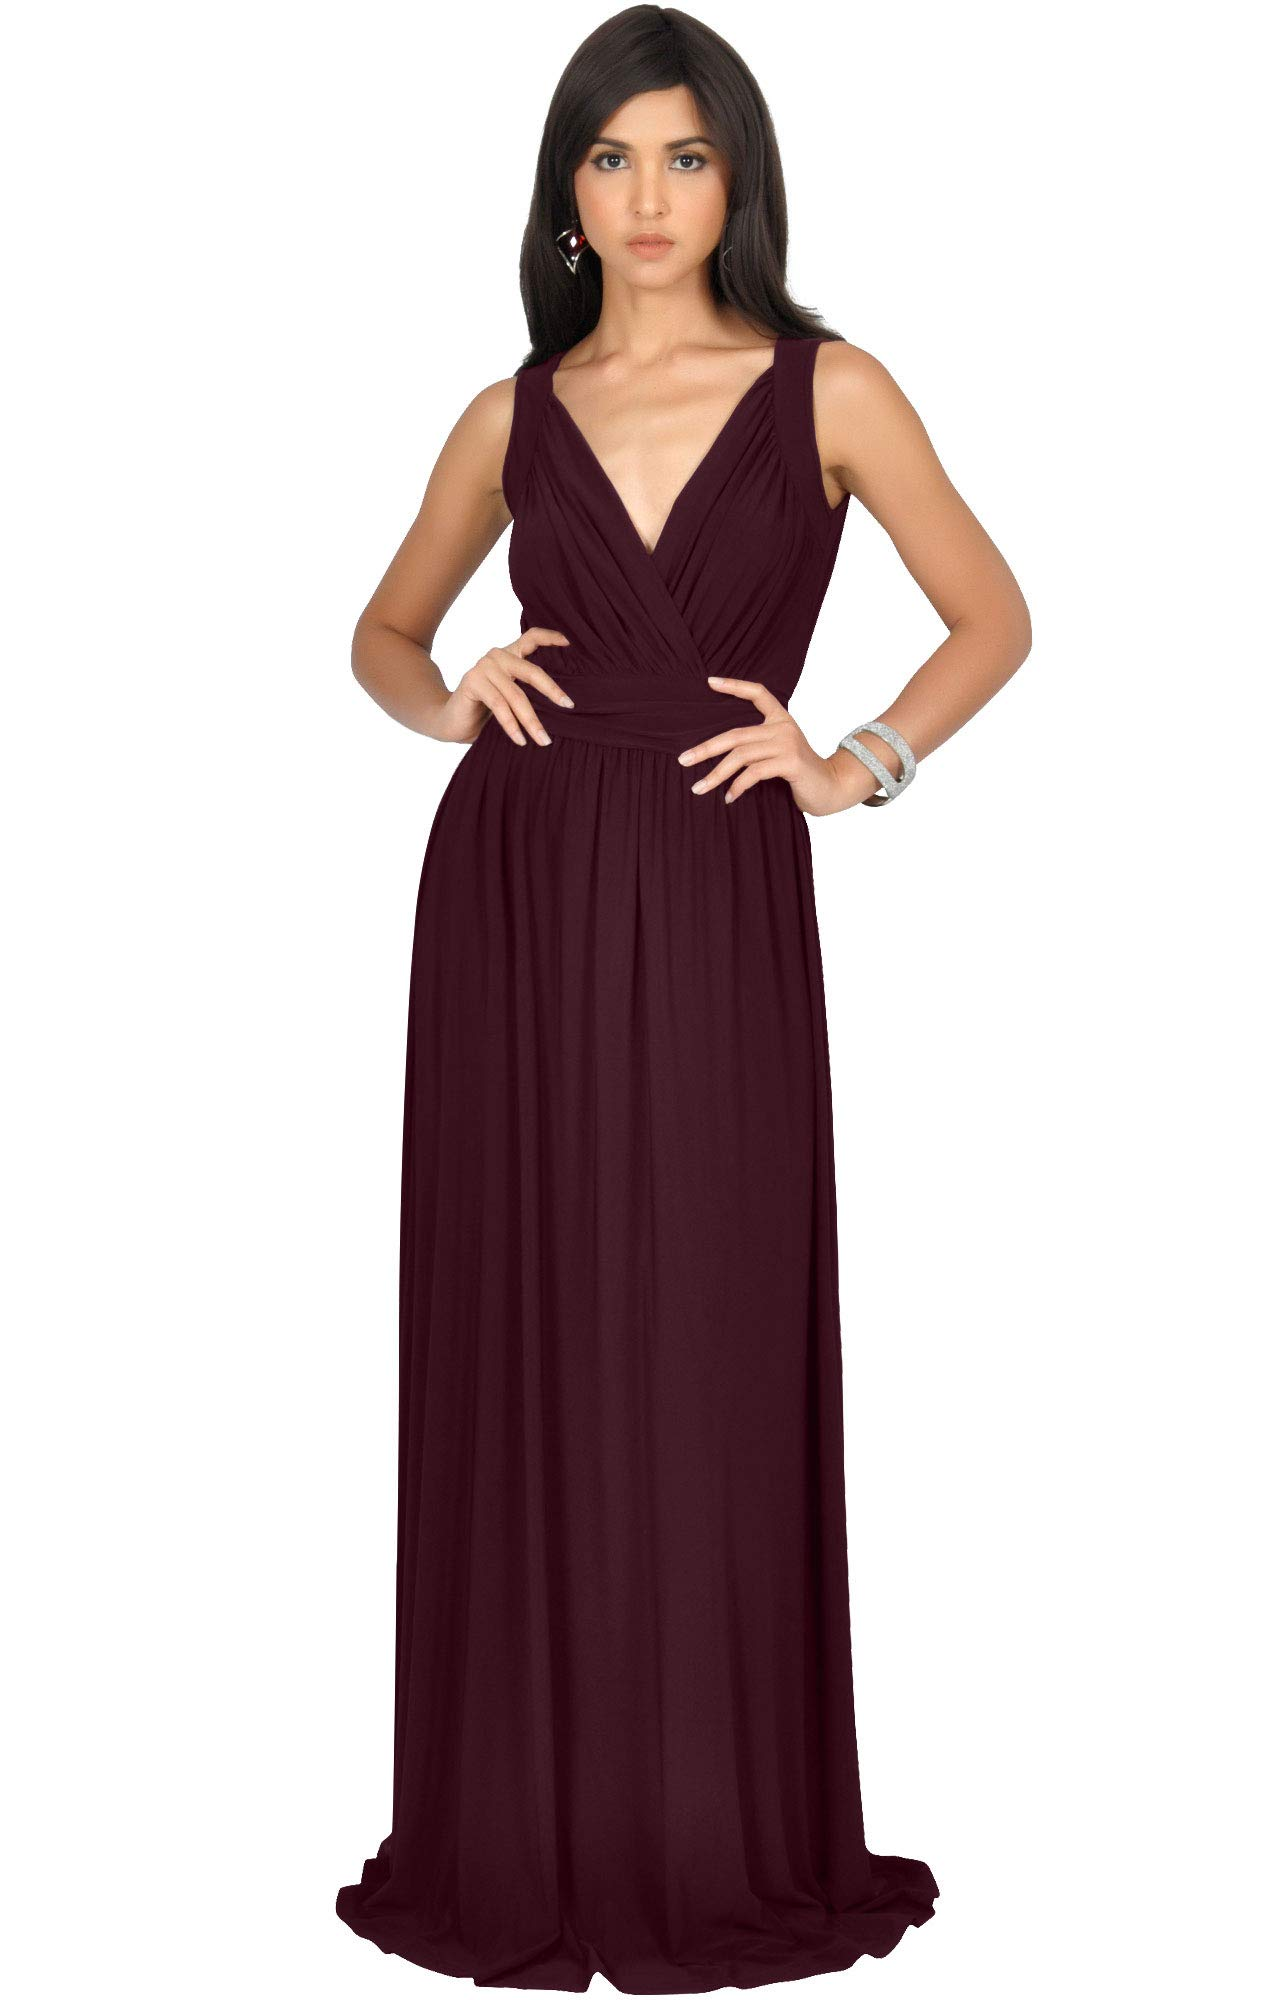 c67f1889ac7 KOH KOH Petite Womens Long Sleeveless Flowy Bridesmaids Cocktail ...